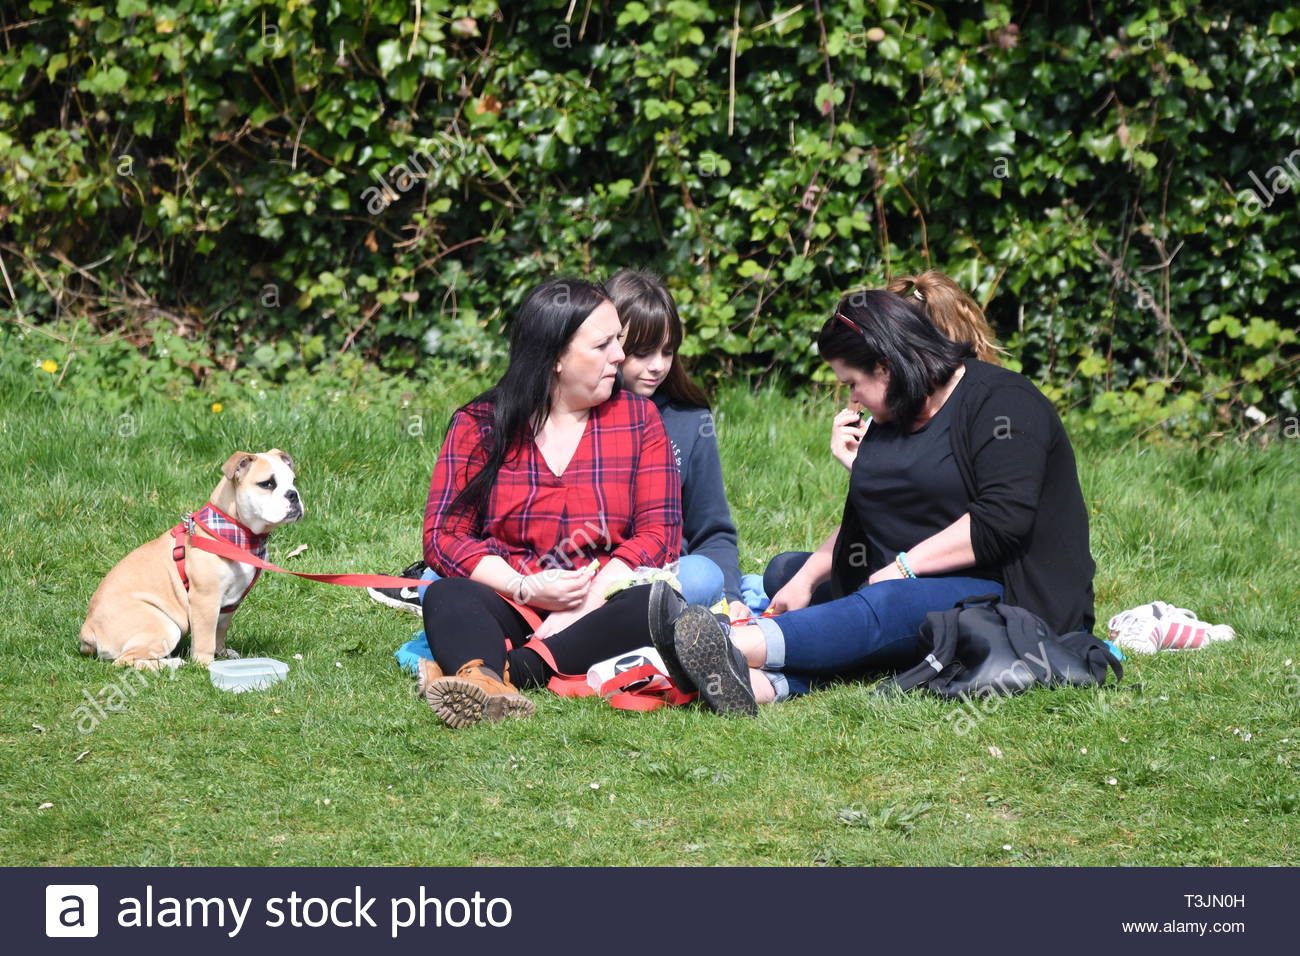 Arundel, West Sussex, UK. Wednesday 10th April 2019. People sitting on grass by a lake on a partly cloudy but bright and cool morning in Arundel, near the South Coast. Credit: Geoff Smith/Alamy Live News - Stock Image